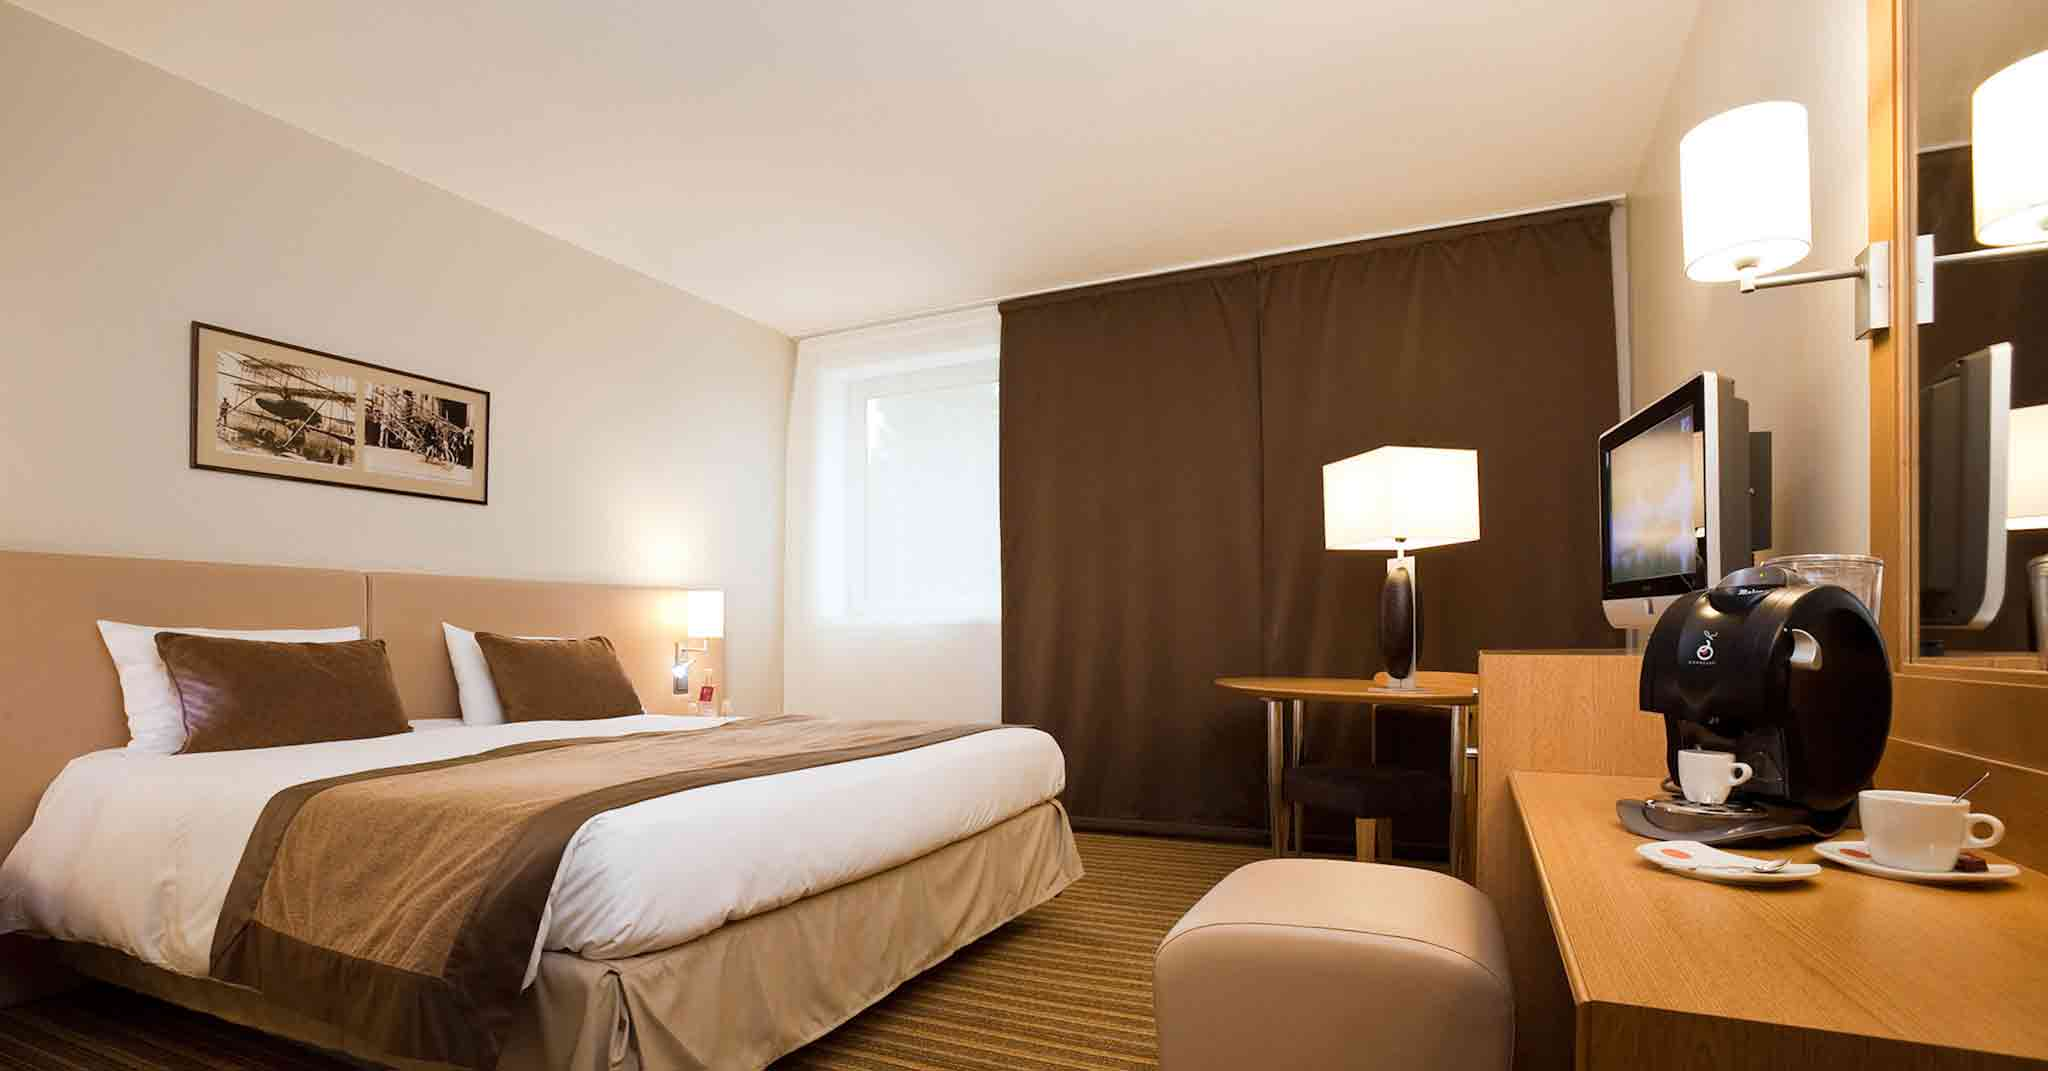 Mercure Paris Roissy Charles de Gaulle View of room